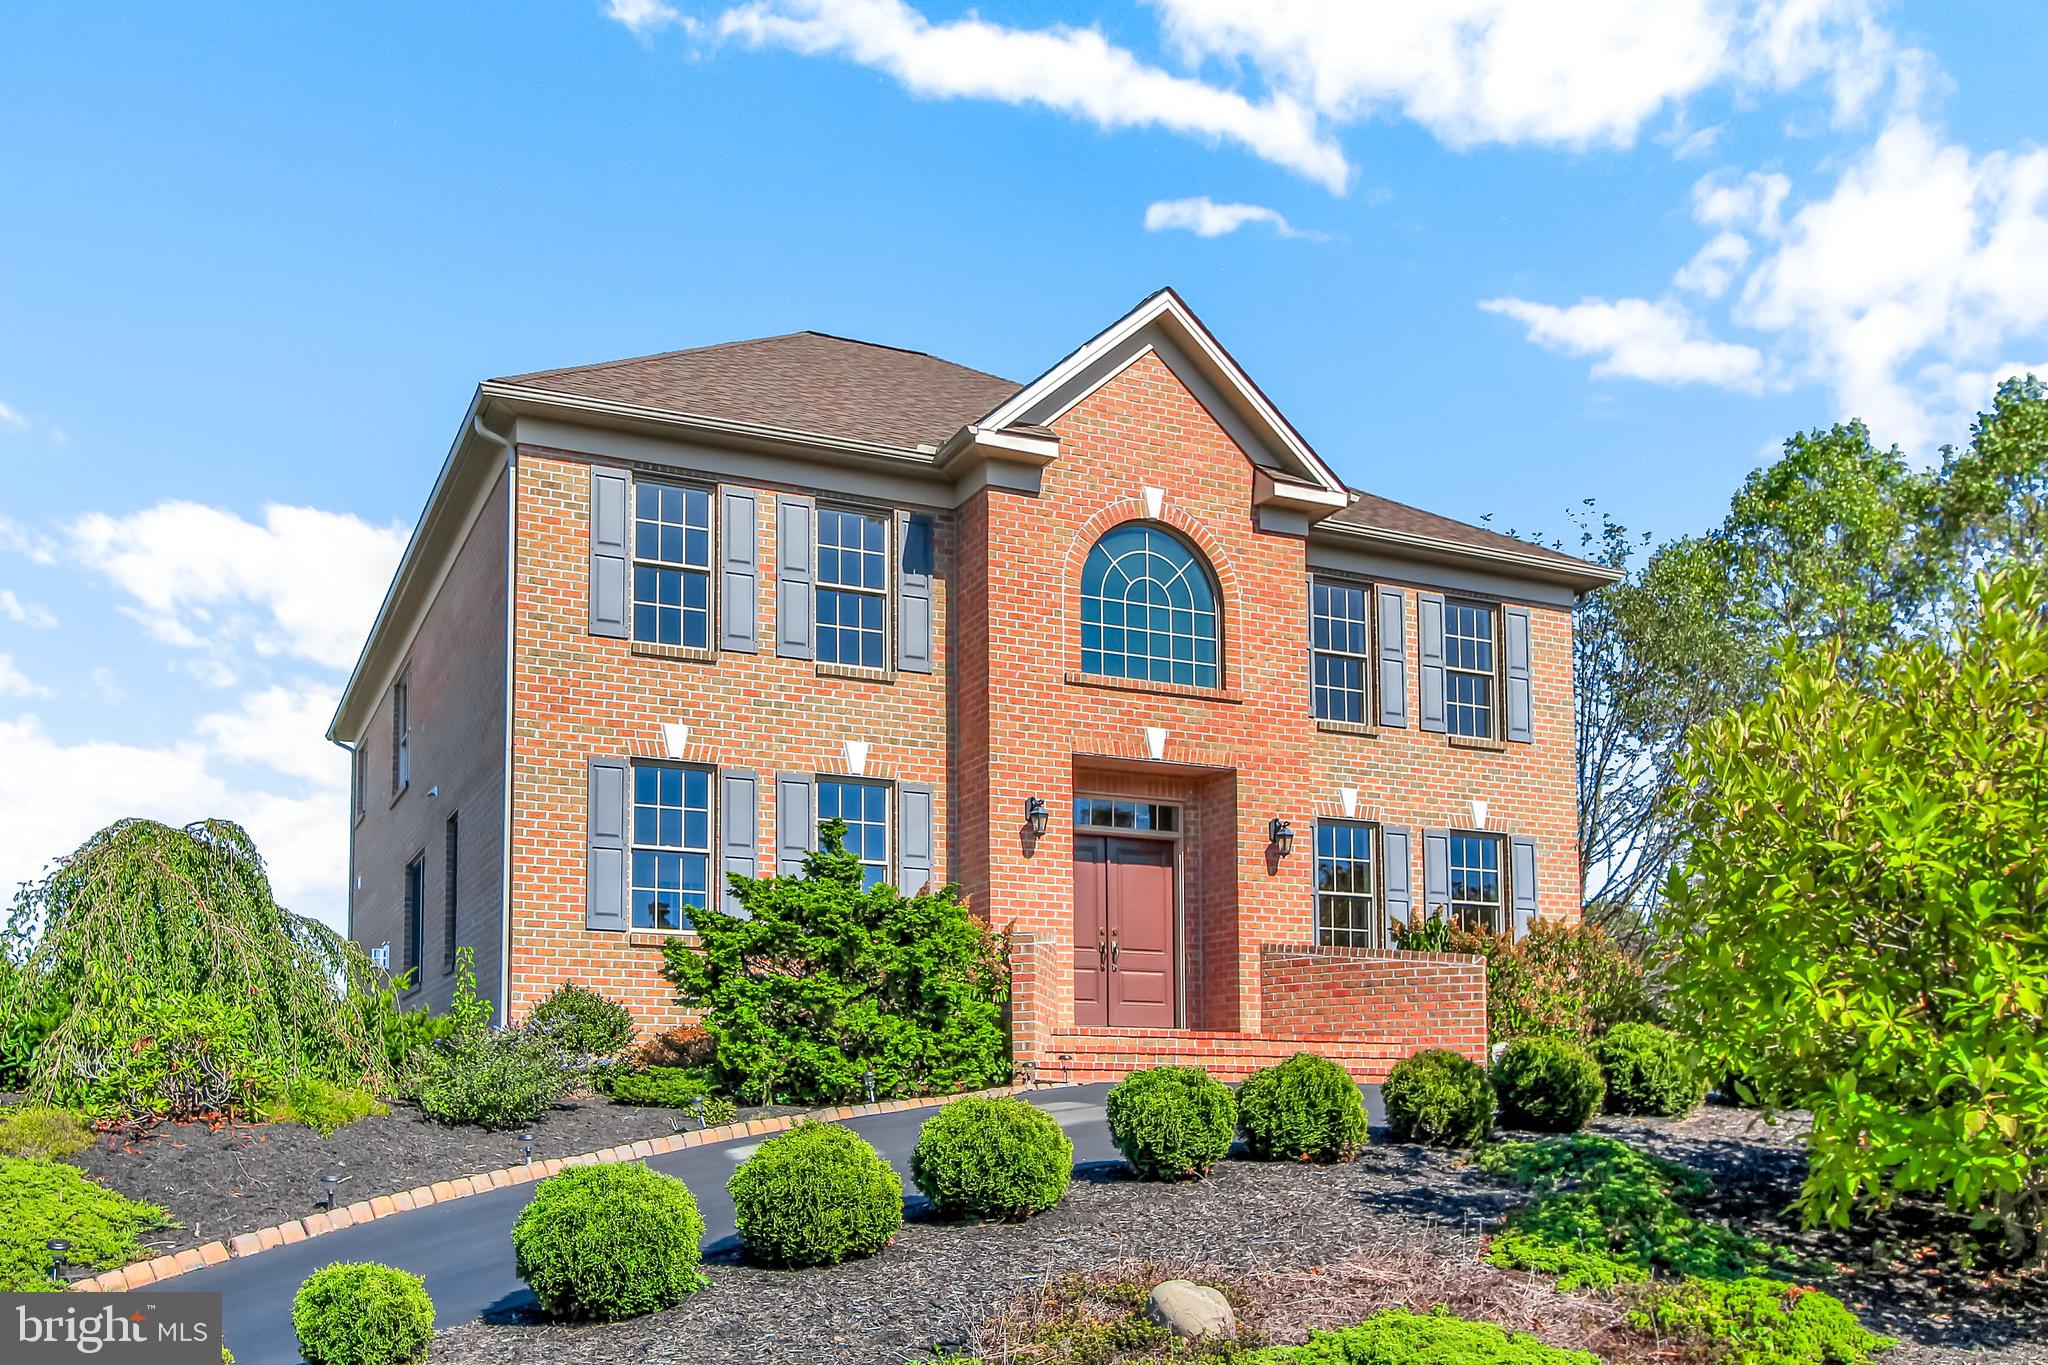 1435 GUILDFORD LANE, YORK, PA 17404